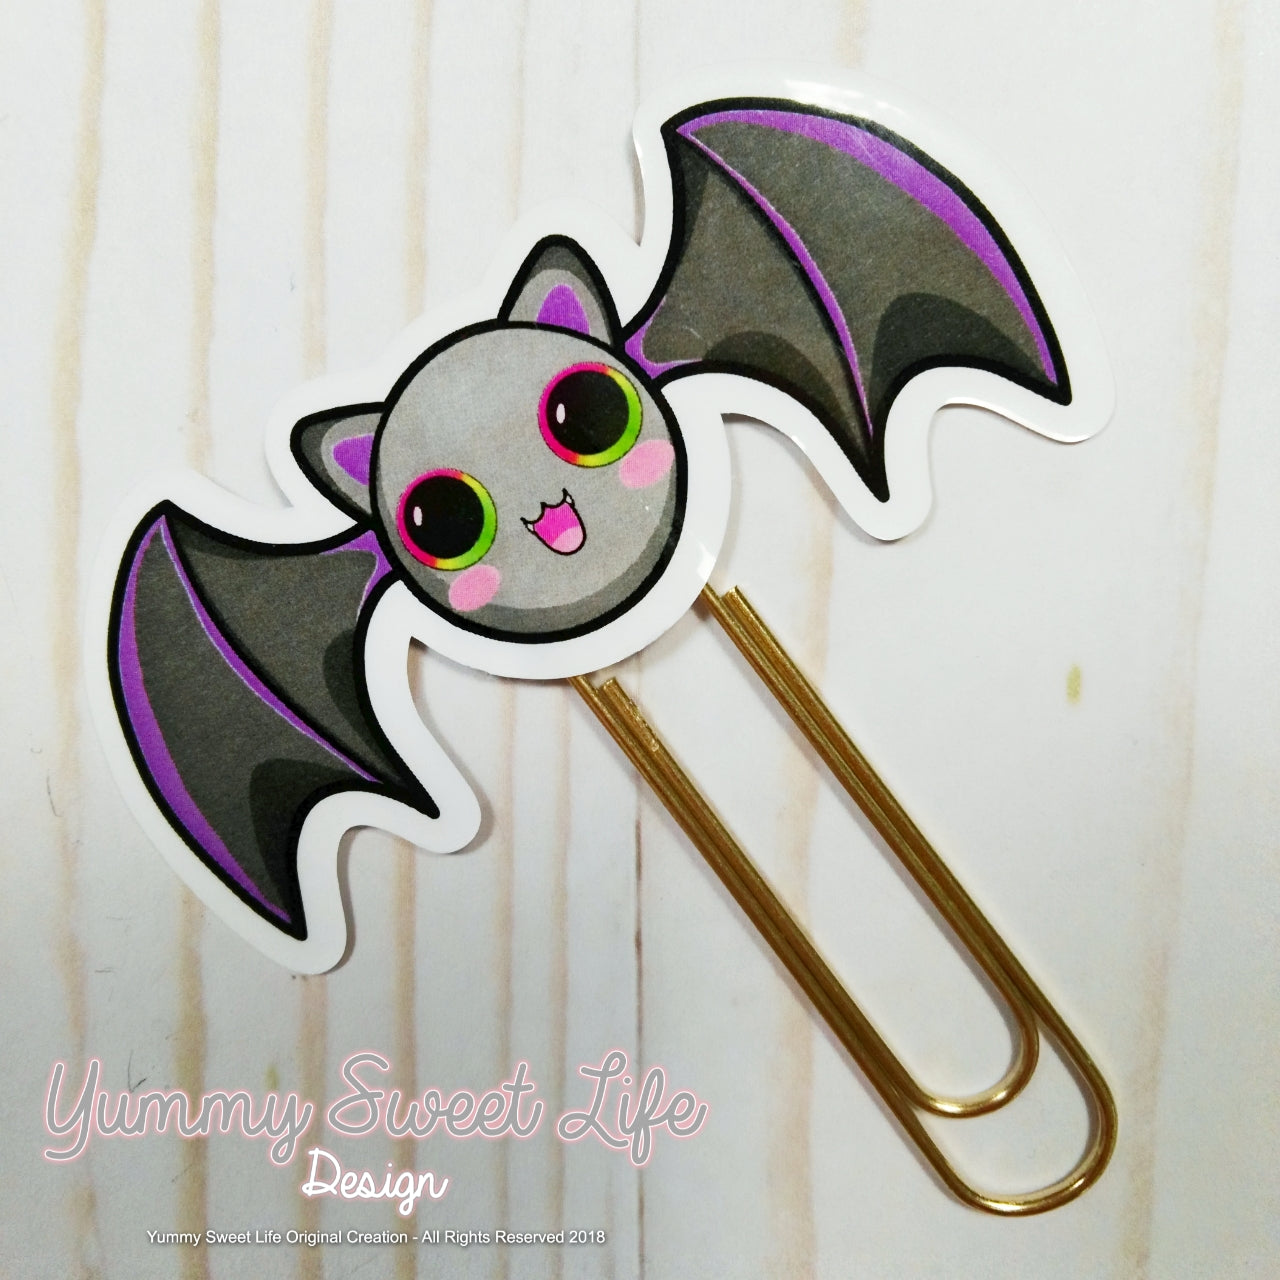 Cute Bat Paperclip